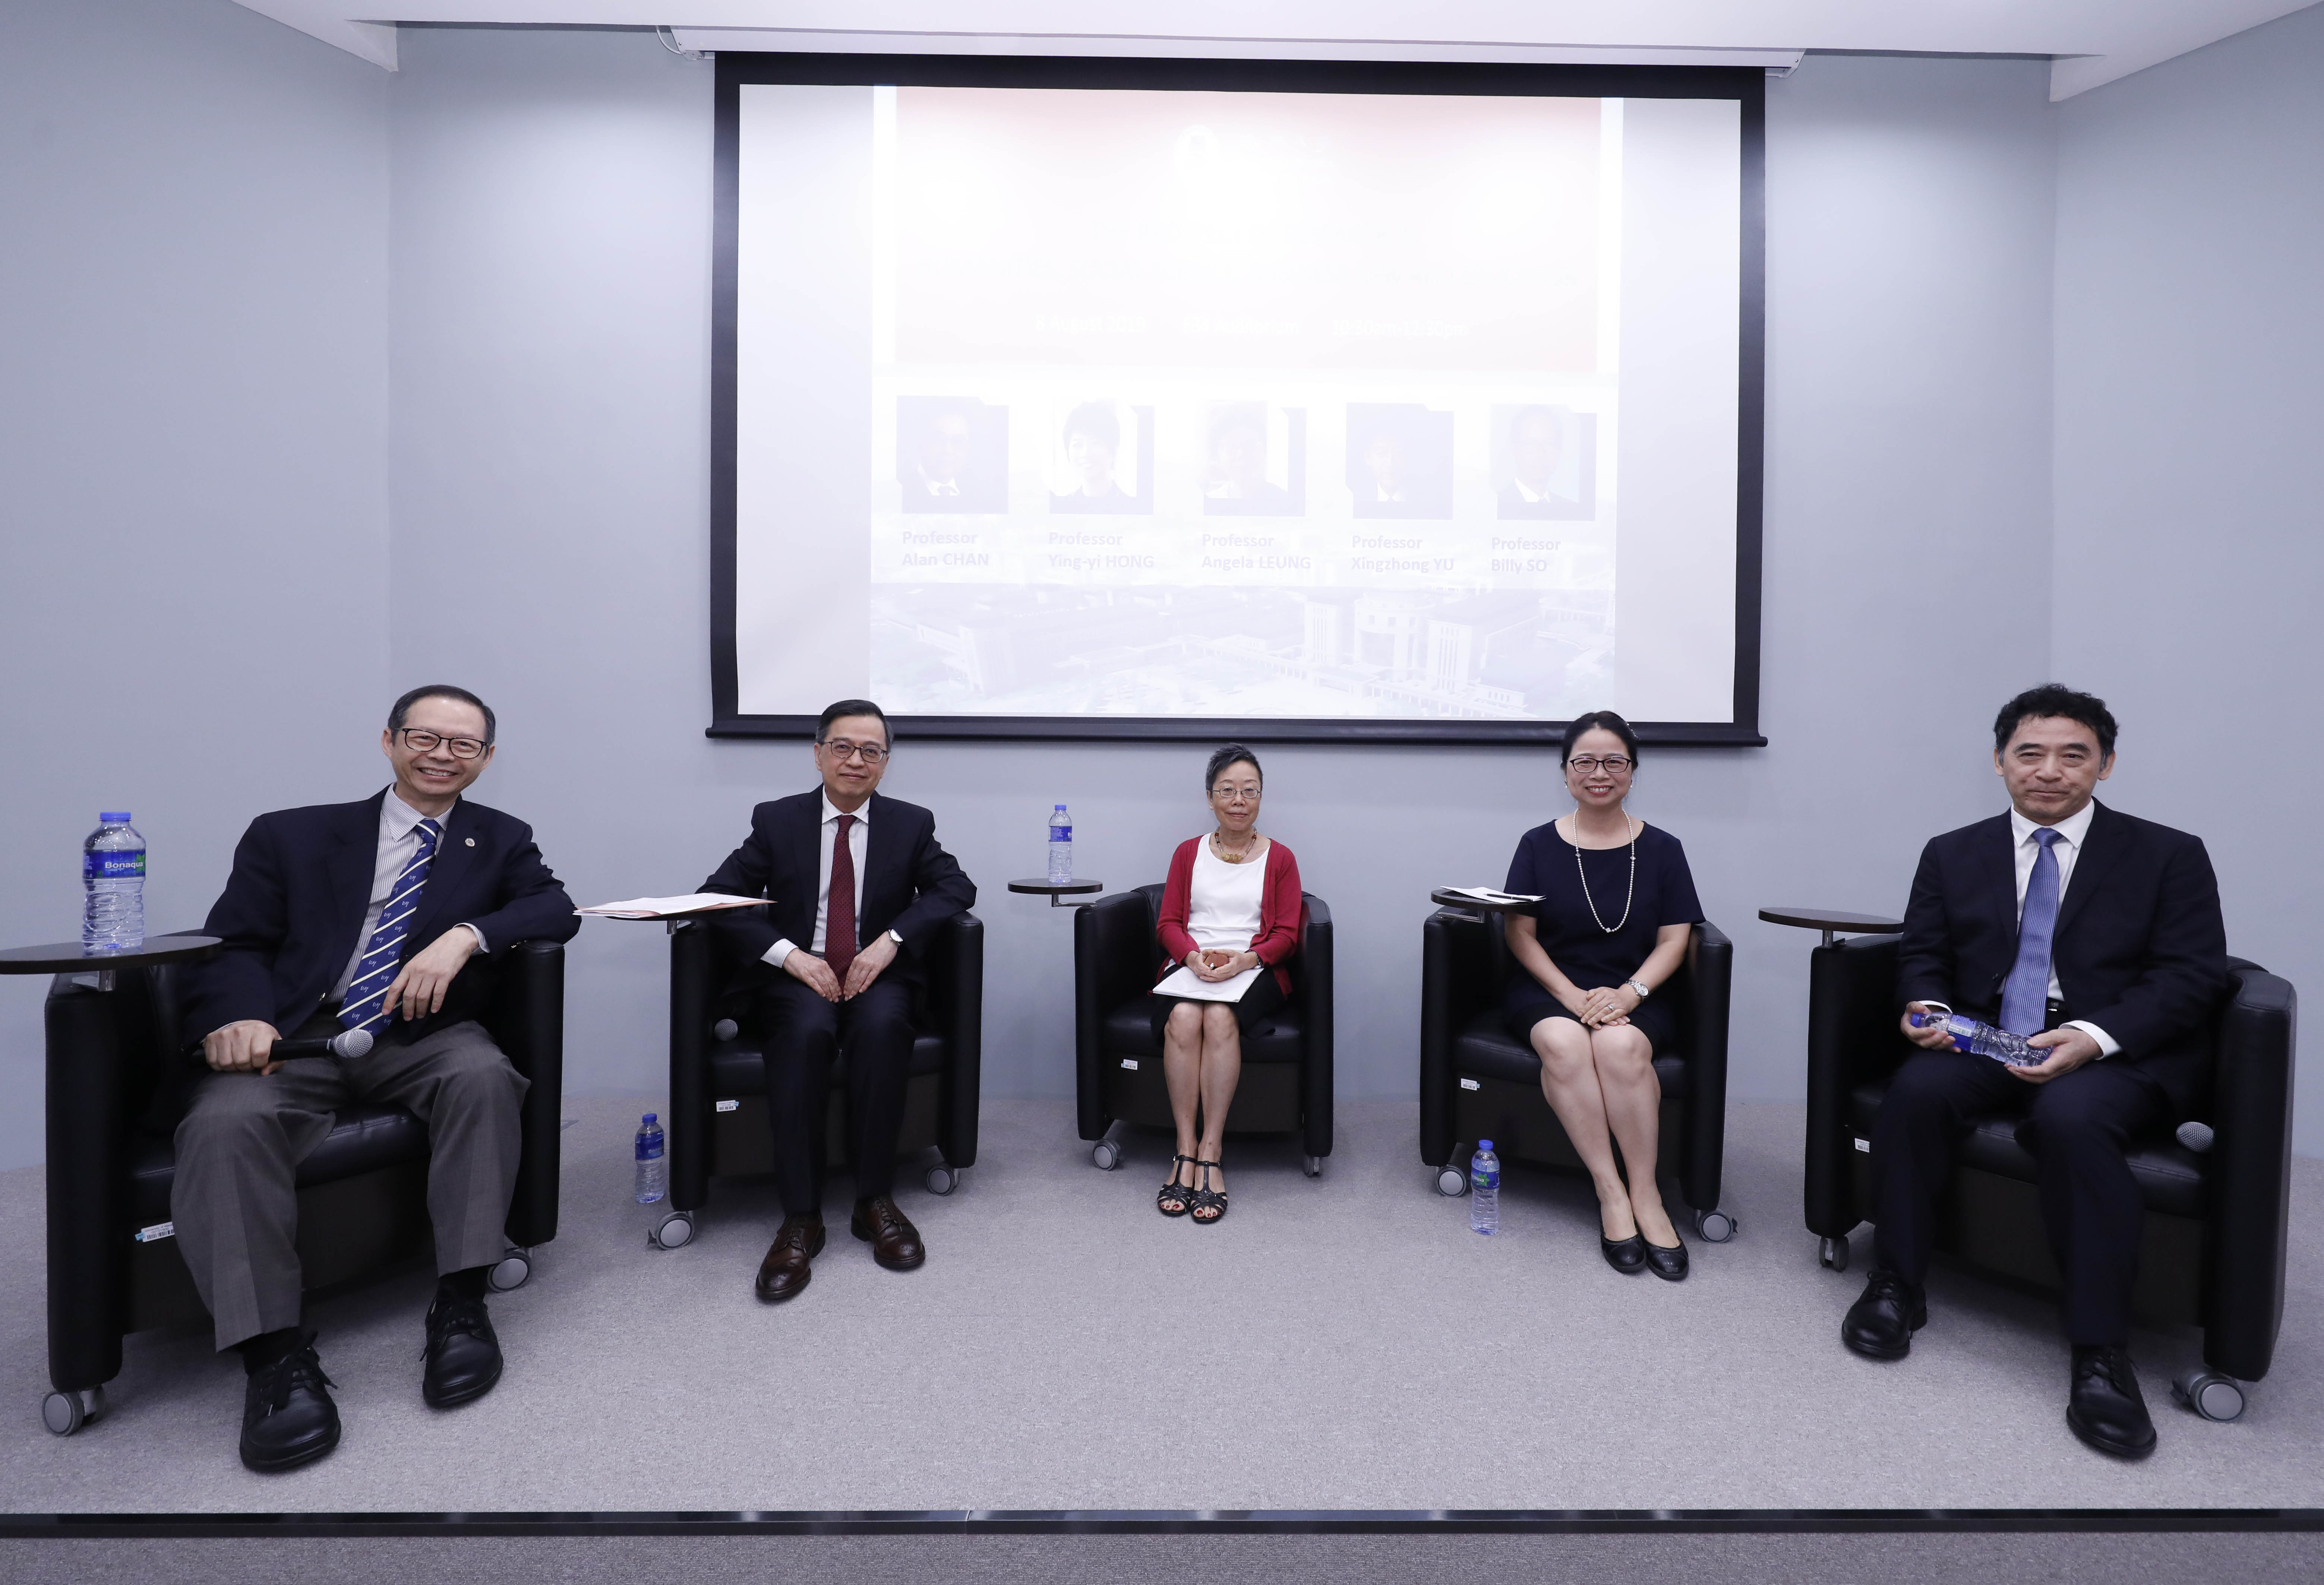 Billy So (1st from left) and scholars discuss the future of interdisciplinary studies